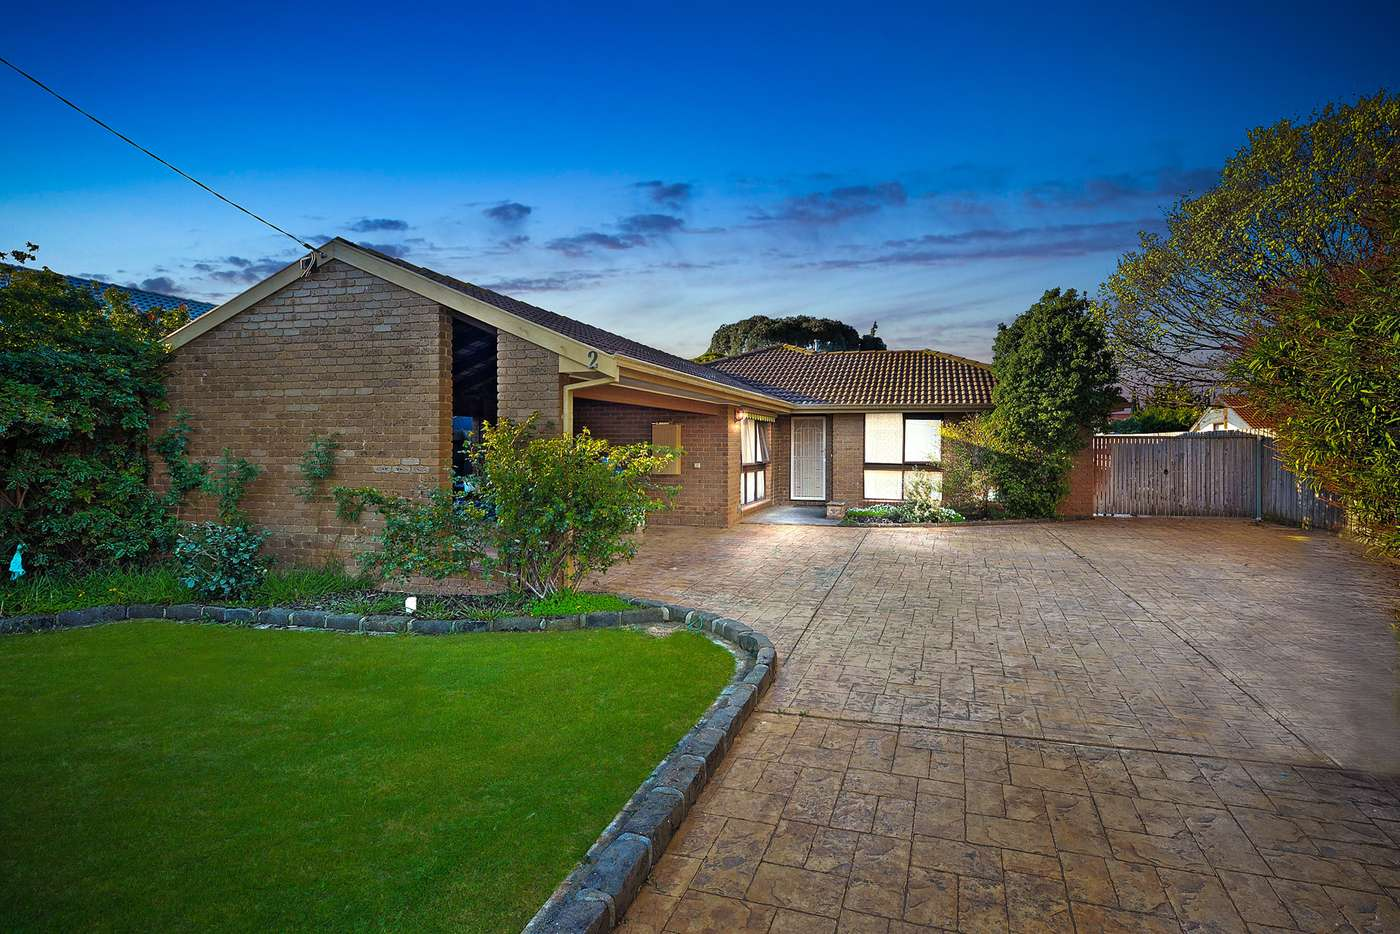 Main view of Homely house listing, 2 Loxley Court, Hoppers Crossing, VIC 3029